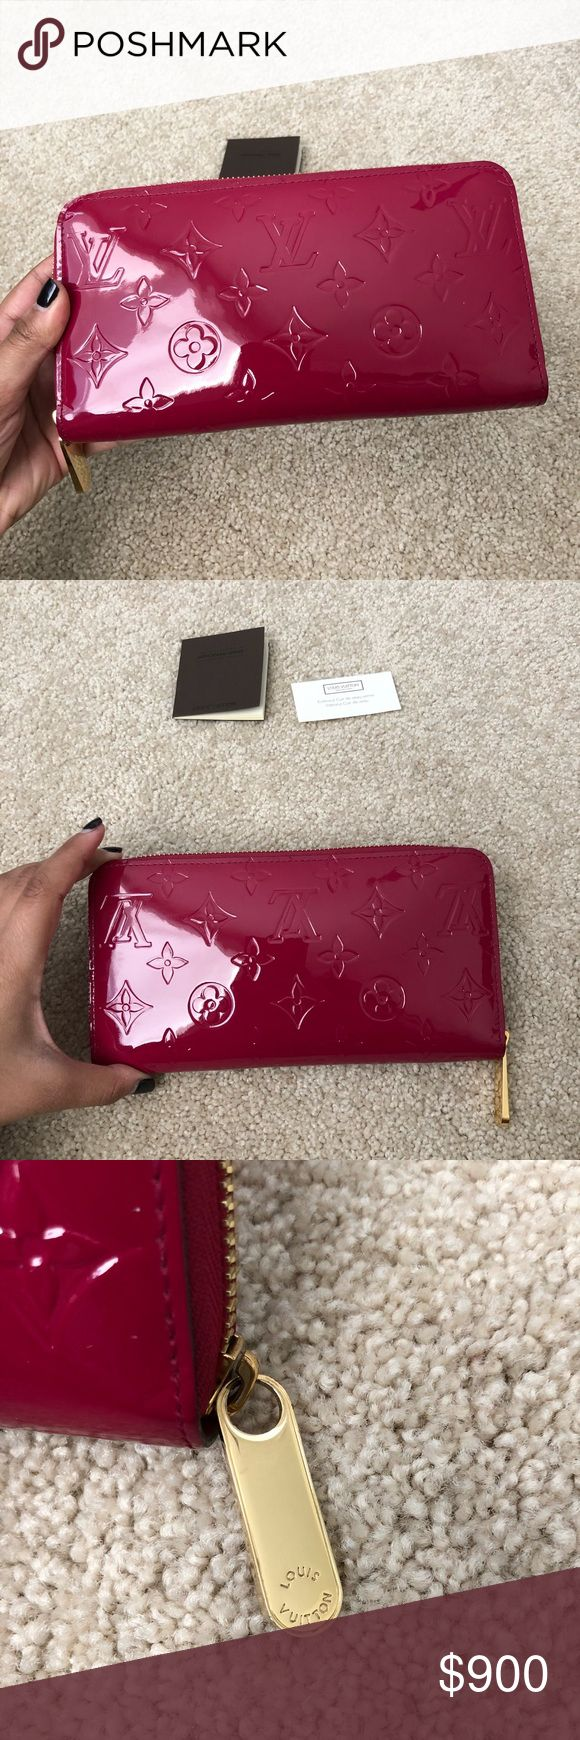 🦄 LV ZIPPY WALLET MONOGRAM VERNIS 🦄 EXCELLENT condition, barley used Zippy Wallet in the patent monogram vernis, DISCONTINUED COLOR! Gently used only a few times, has been stored in dust bag! Leather is in EXCELLENT/LIKE NEW condition; zipper also great since only taken out a few times details below!    💕 Made in SPAIN - Datecode CA1173   💕 2 main/front card slots slightly stretched - those were the only card slots used   Please refer to all photos closely - feel free to request any…